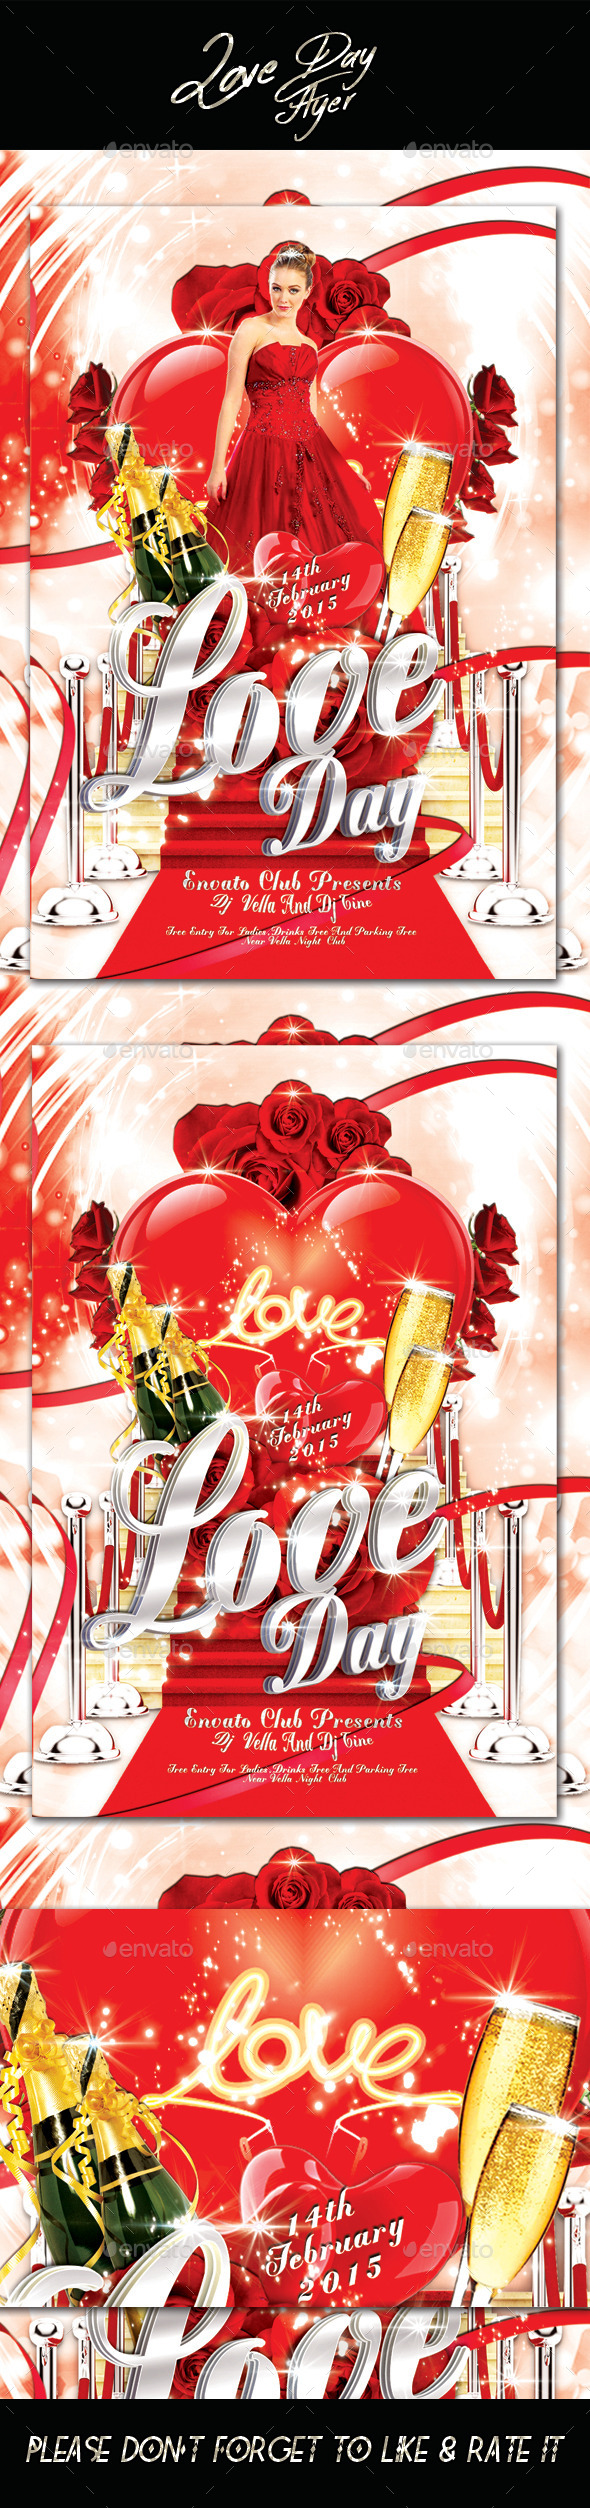 Love Day Flyer  - Flyers Print Templates